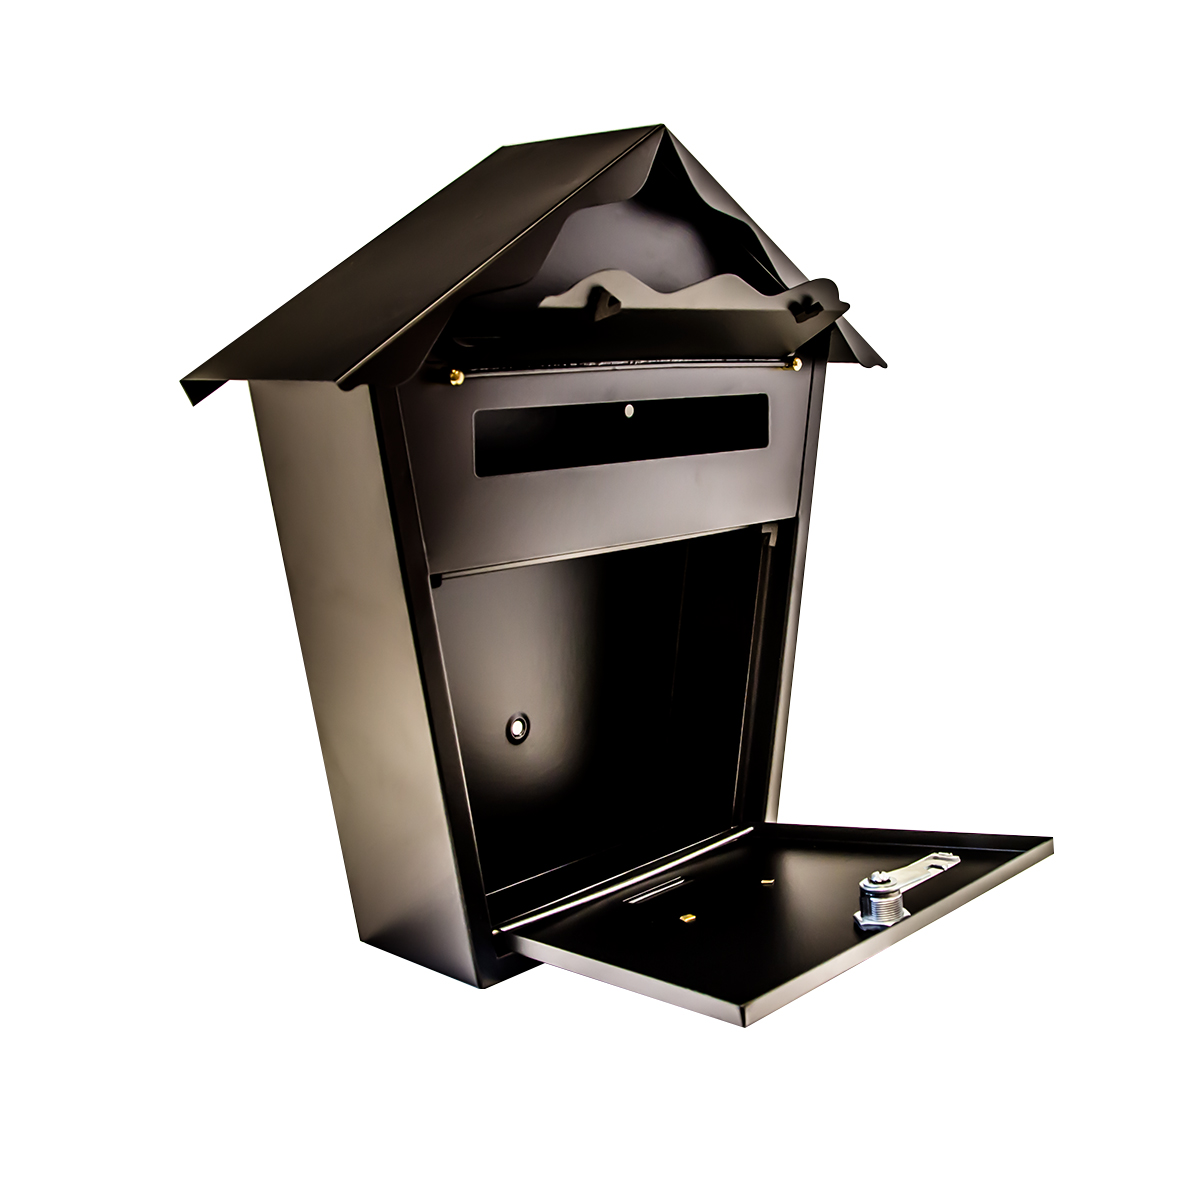 Mailbox stainless steel locking mail box letterbox postal box modern - Sentinel Secure Metal Home Outdoor Mail Post Letter Box Wall Mounted Lockable With Key